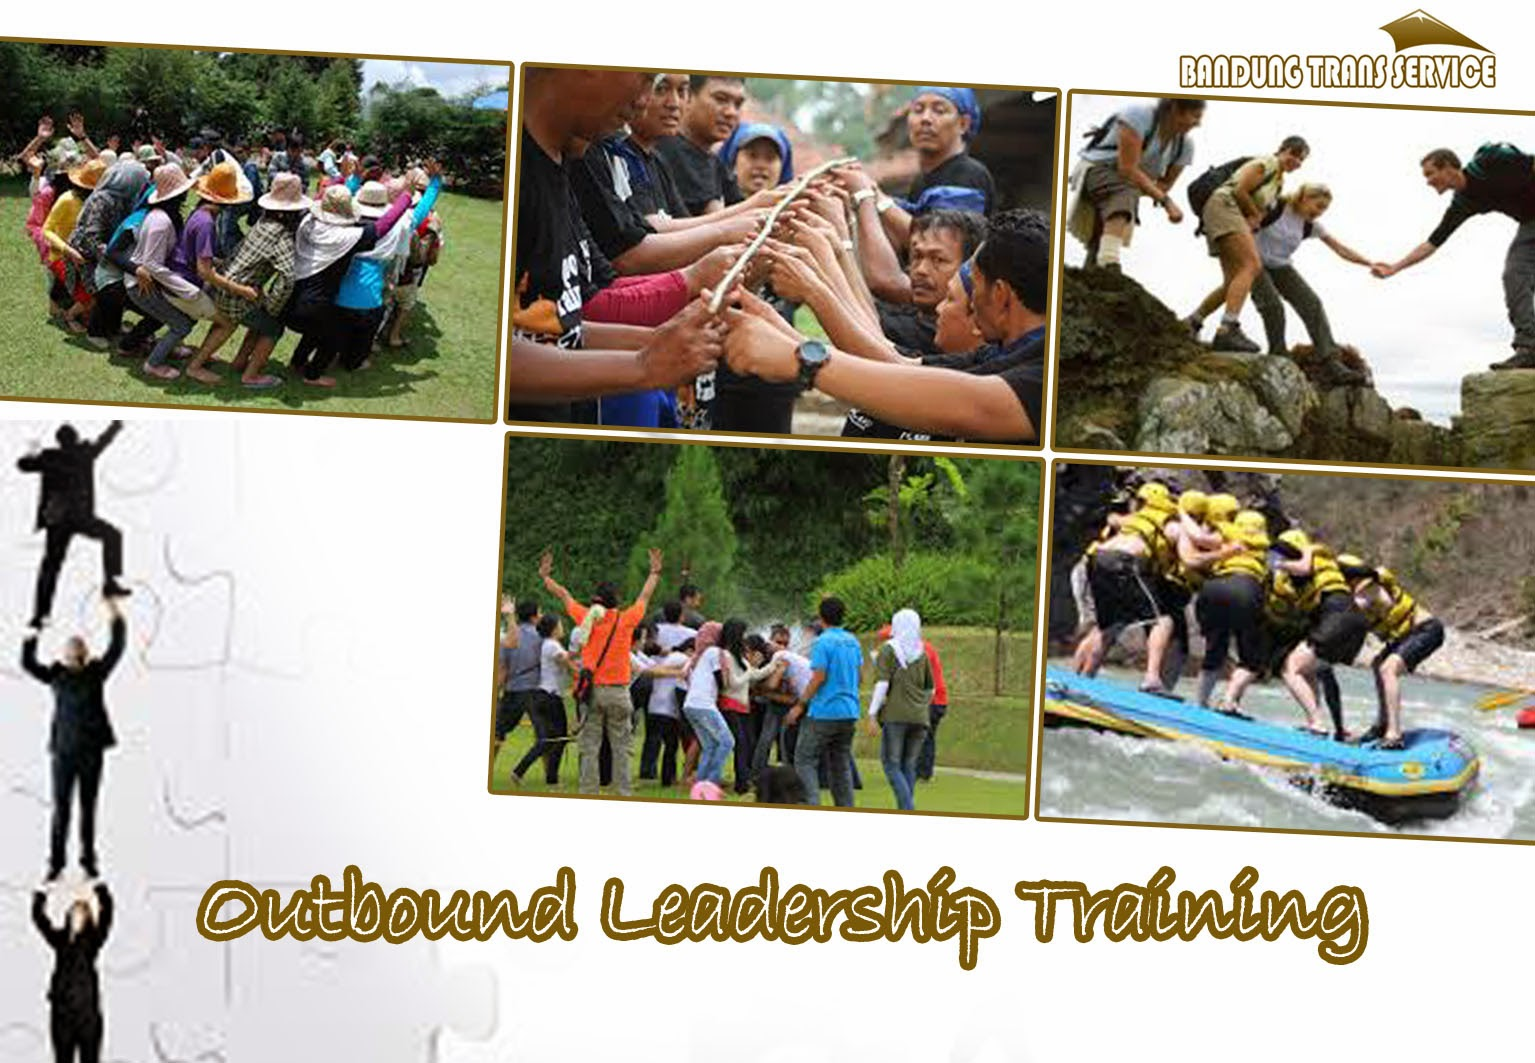 Outbound Leadership Training di Bandung